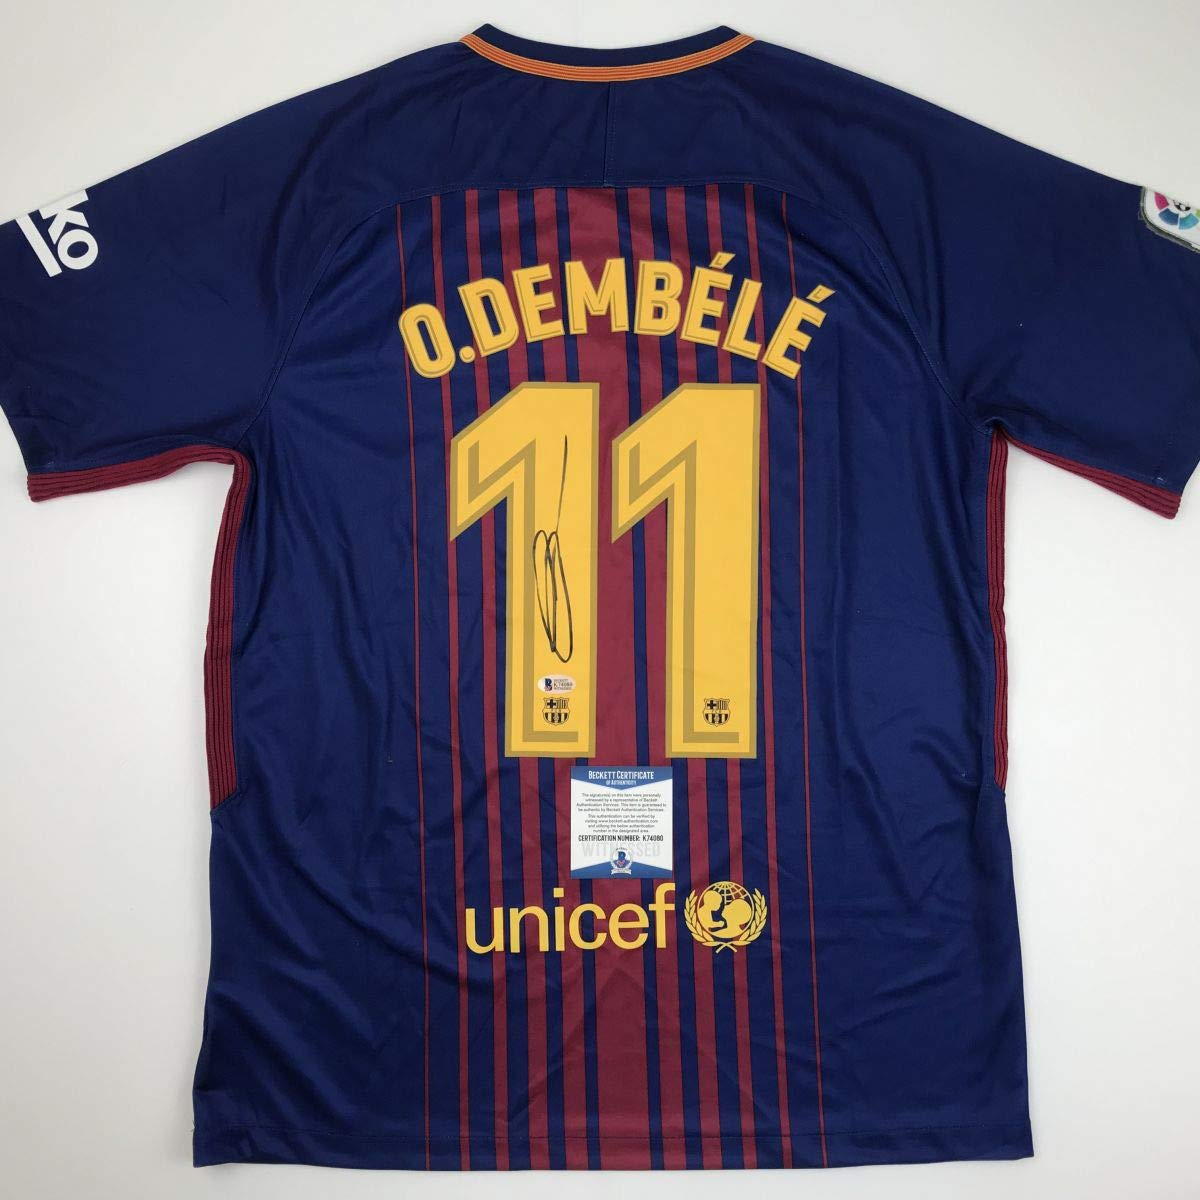 e0db5d573 Autographed Signed Ousmane Dembele FC Barcelona Blue Soccer Jersey Beckett  BAS COA Auto at Amazon s Sports Collectibles Store